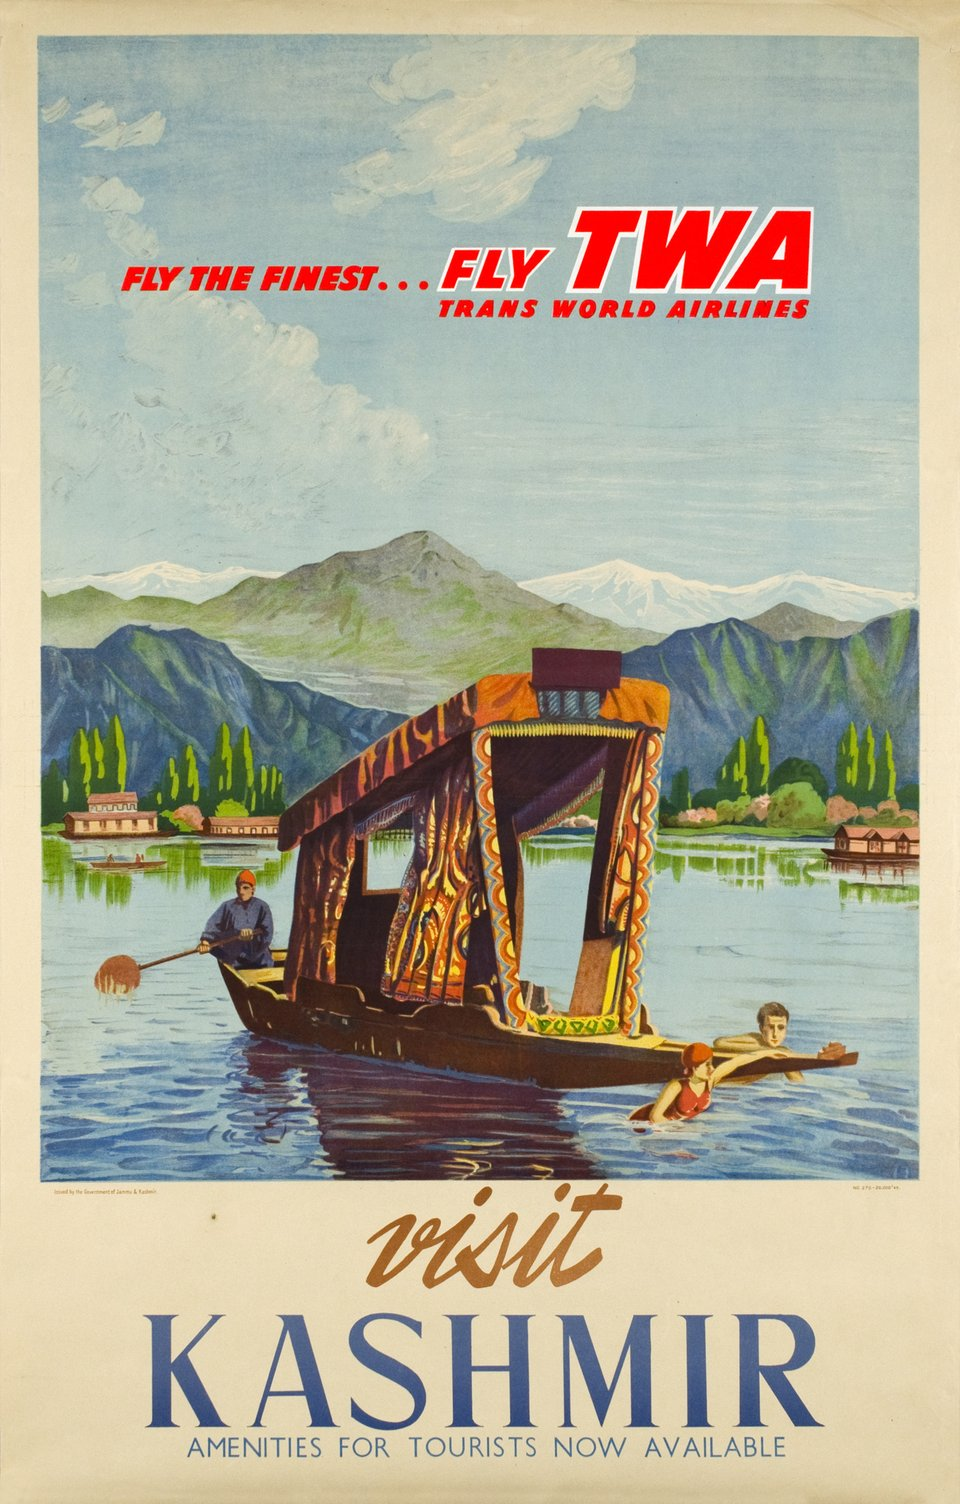 TWA, Visit Kashmir, Fly the finest, Fly TWA – Affiche ancienne –  ANONYME – 1950